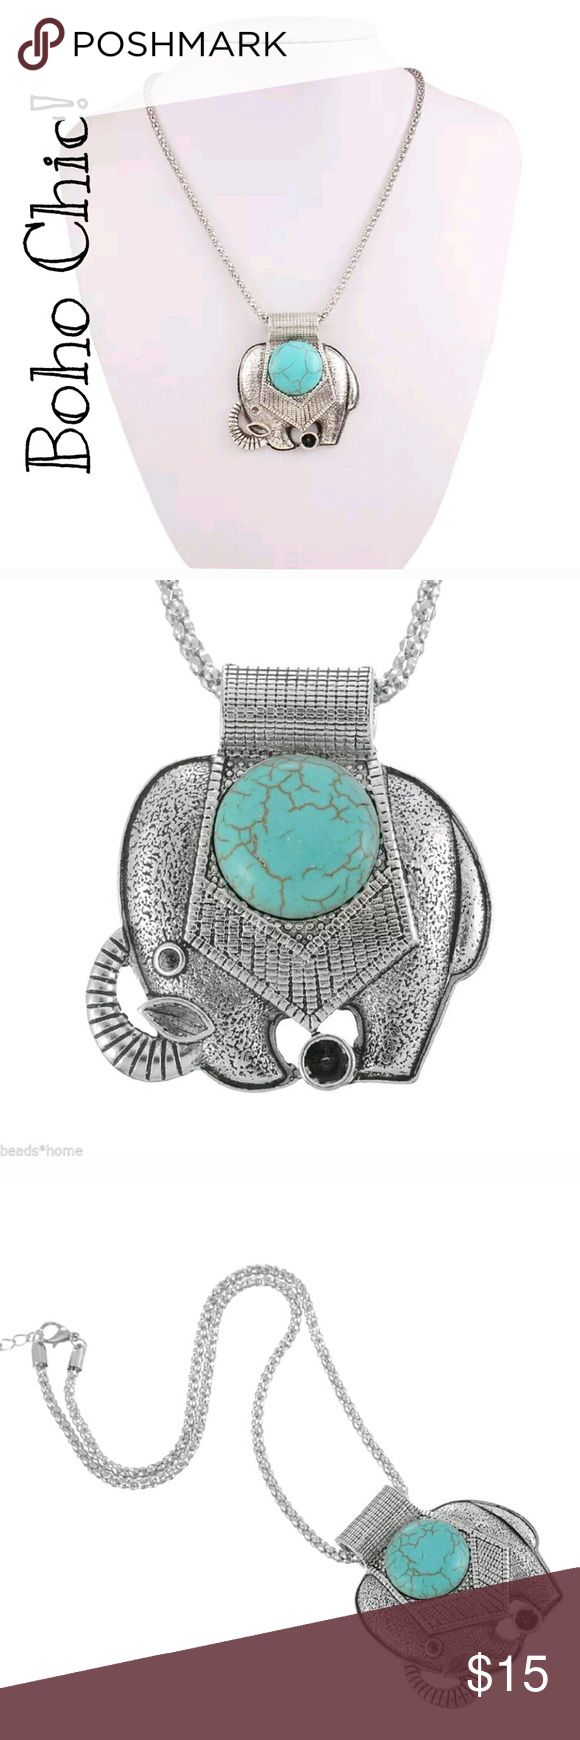 🔮BOGO Turquoise & Silver Elephant Boho Necklace 🔮Everything in my closet is temporarily BOGO HALF OFF! See closet sale listing for rules.🔮   PRICE FIRM!  This adorable necklace is new. It's silver w/a turquoise colored stone. The quality is nice for this price point. I have 2 available as of the time of this listing, but elephant jewelry sells fast! The turquoise will obviously have variation from the stock photo. Please ask if you want a pic of the actual necklace. I'll be glad to take…